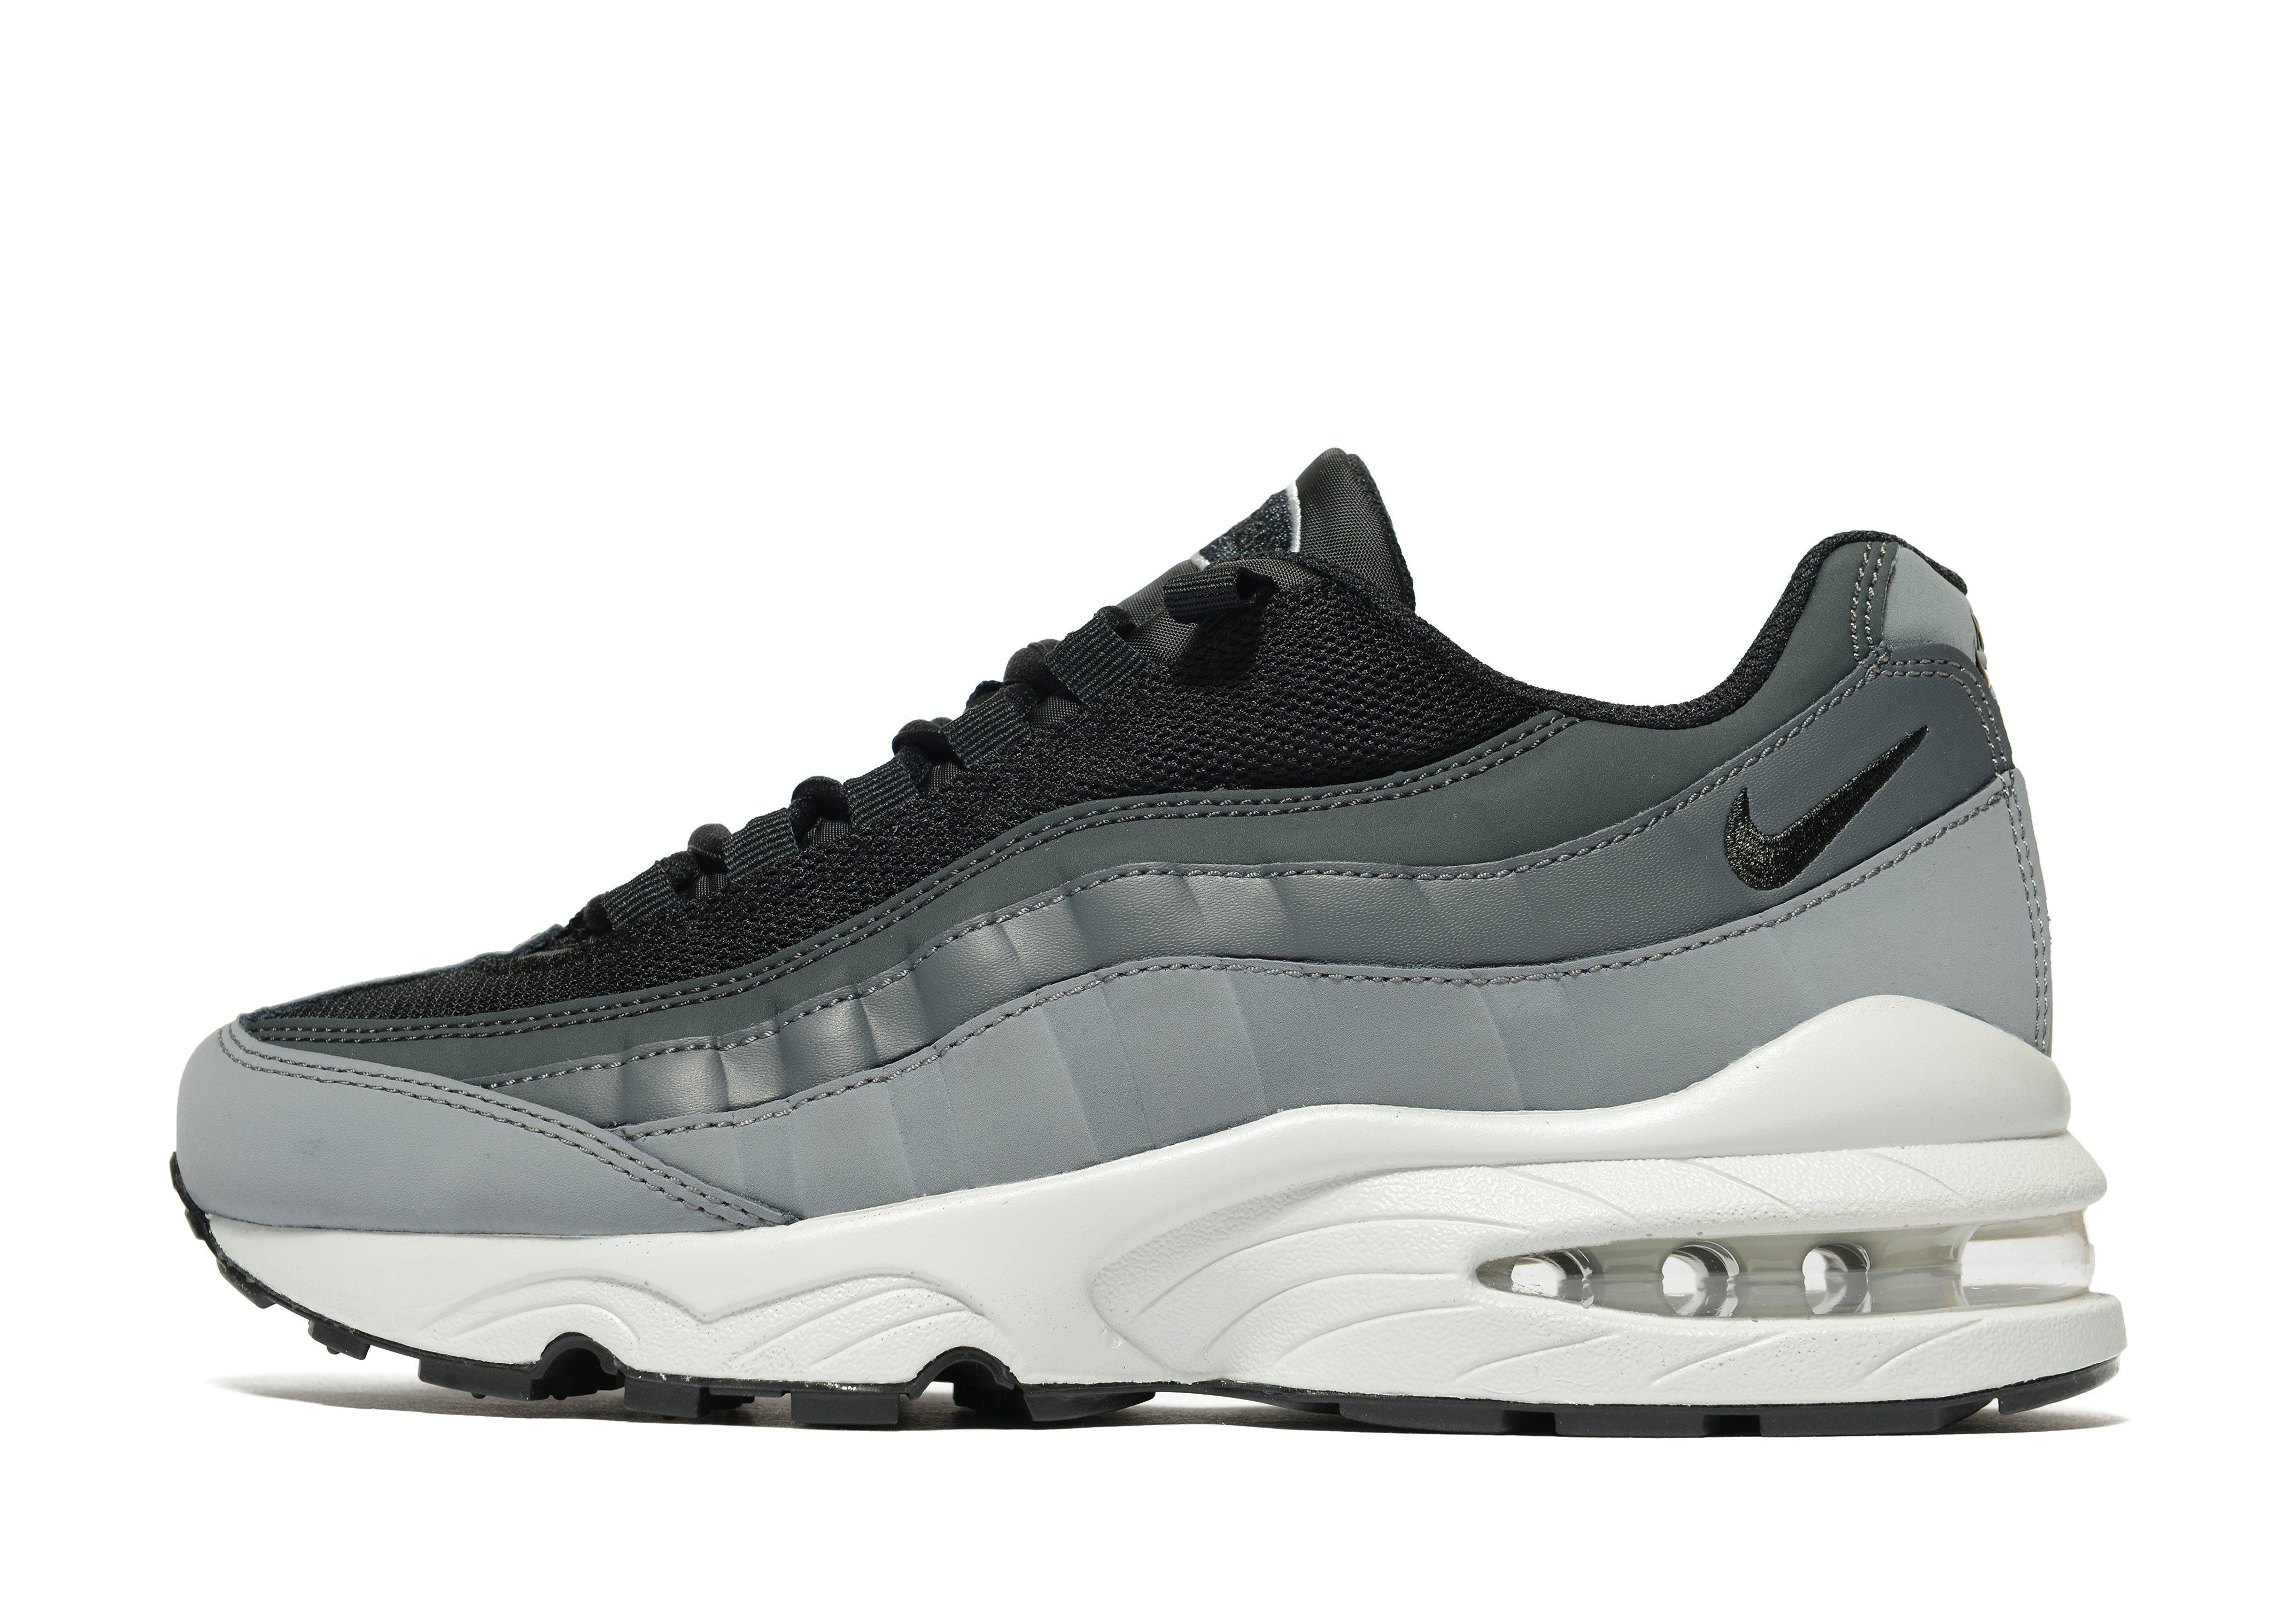 lyst nike air max 95 junior in black for men. Black Bedroom Furniture Sets. Home Design Ideas